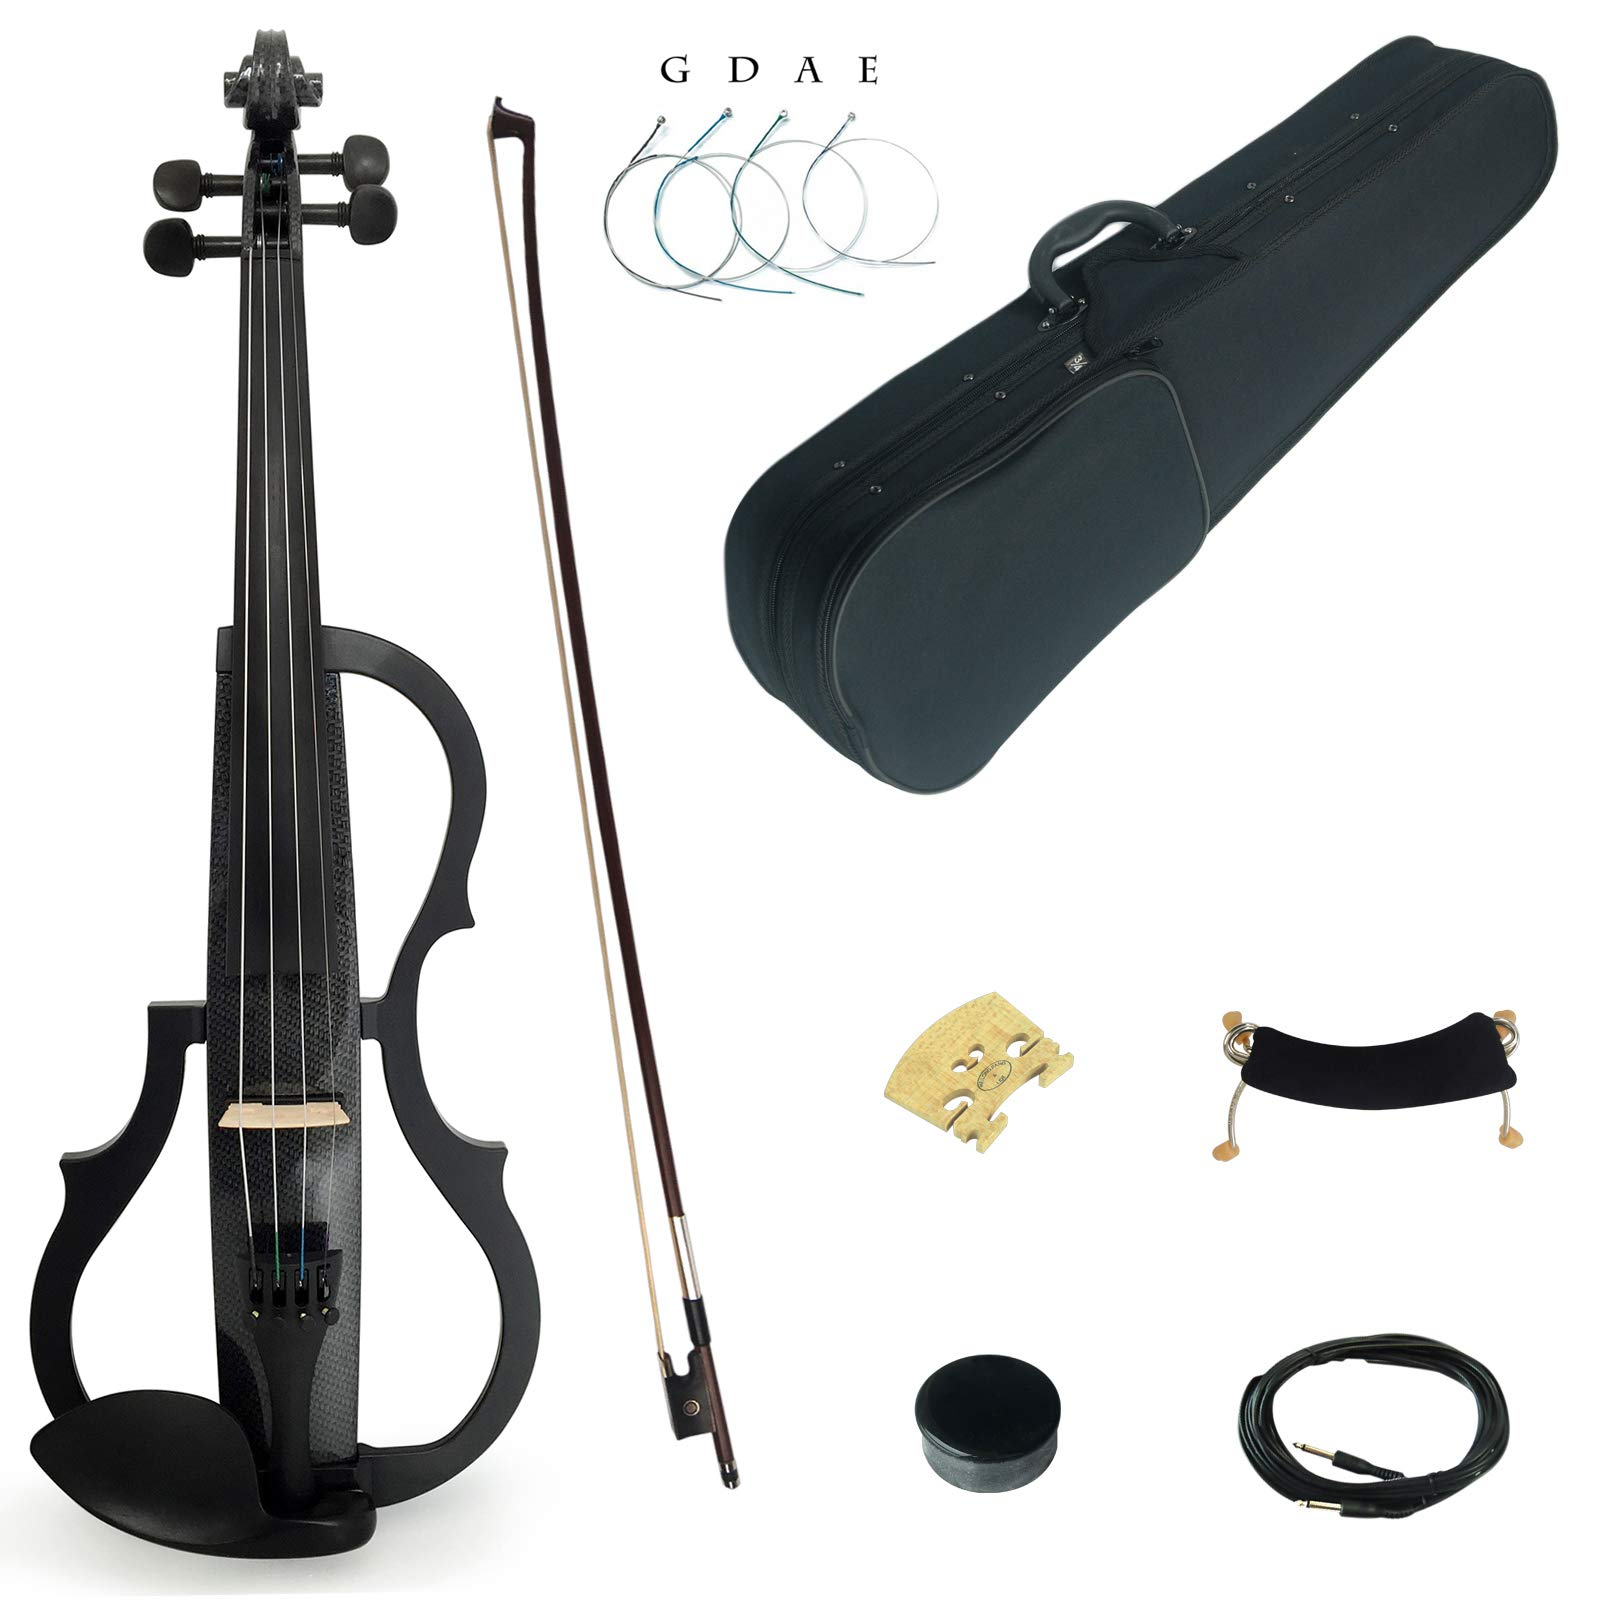 Kinglos 4/4 Black Grid Colored Solid Wood Advanced 3-Band-EQ Electric/Silent Violin Kit with Ebony Fittings Full Size (SDDS1311) by Kinglos